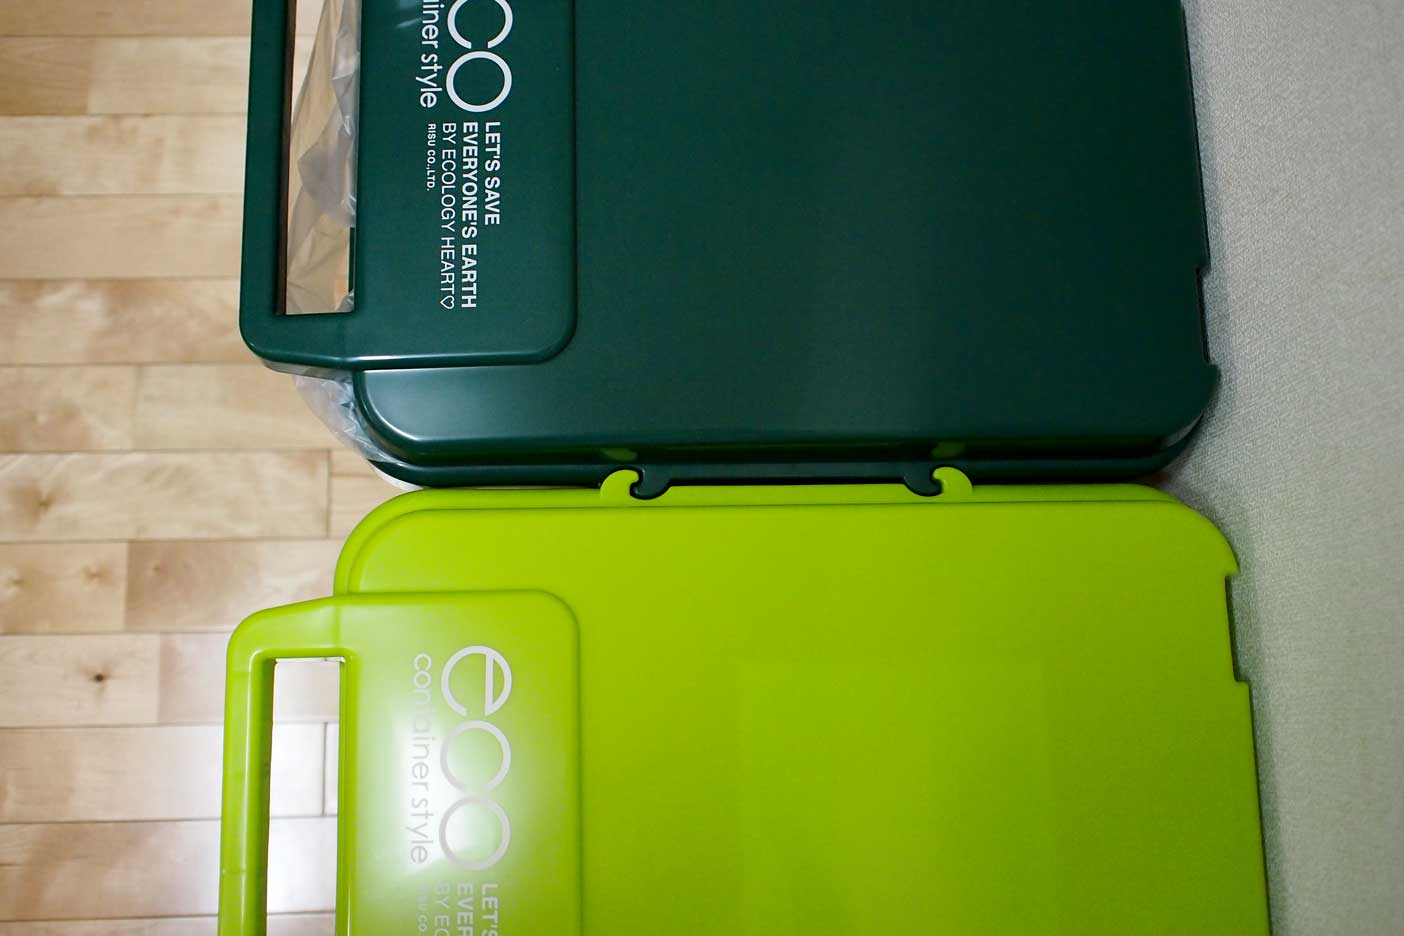 Risu dustbox eco004